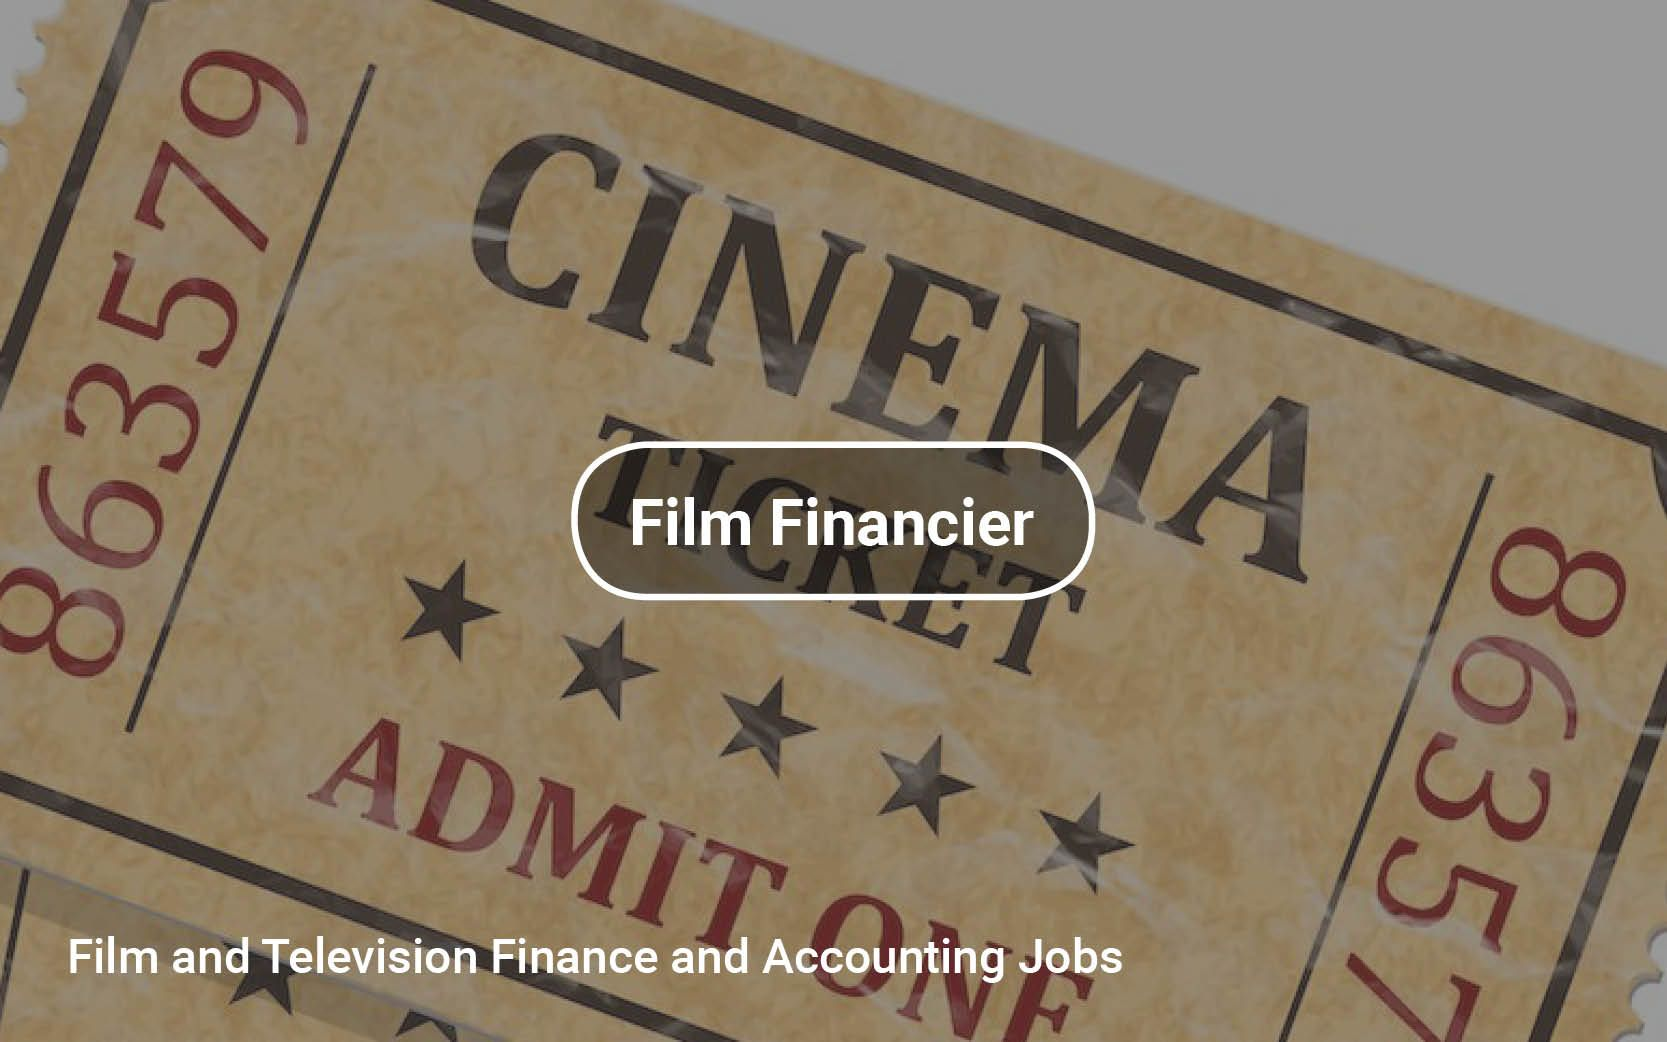 Film and Television Finance and Accounting Jobs film